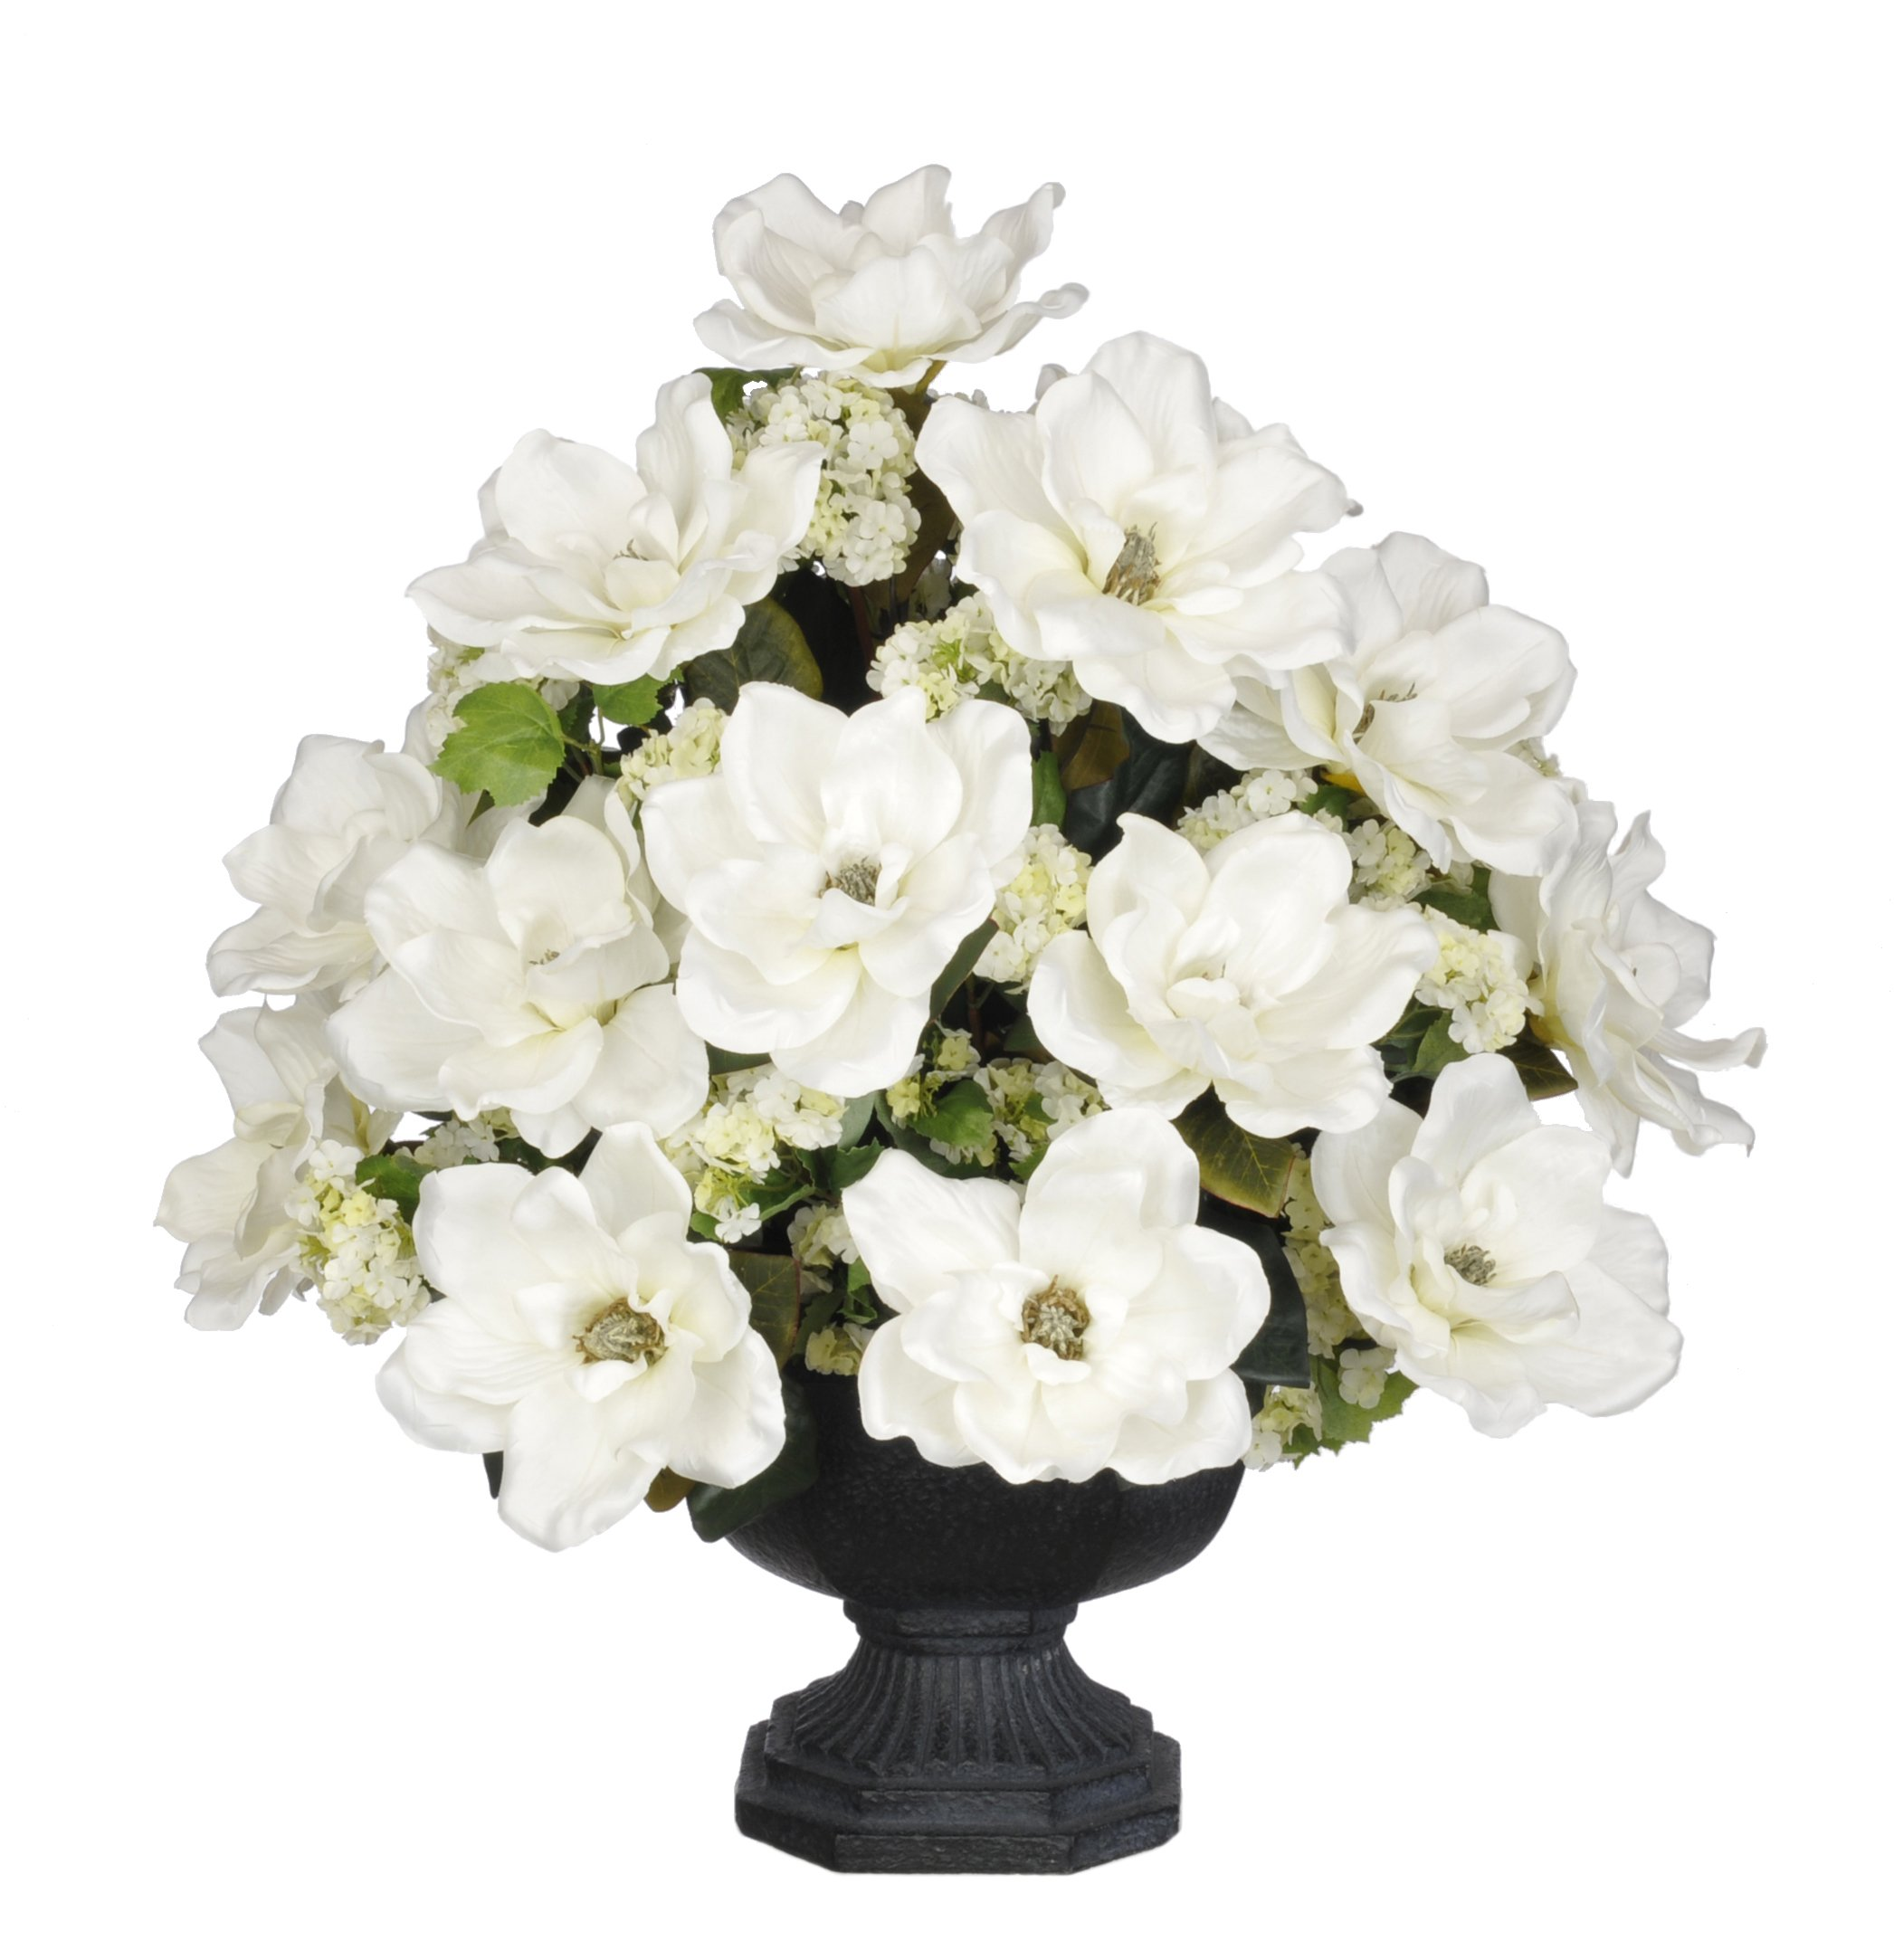 House-of-Silk-Flowers-Artificial-White-Magnolia-with-Snowball-in-Black-Garden-Urn